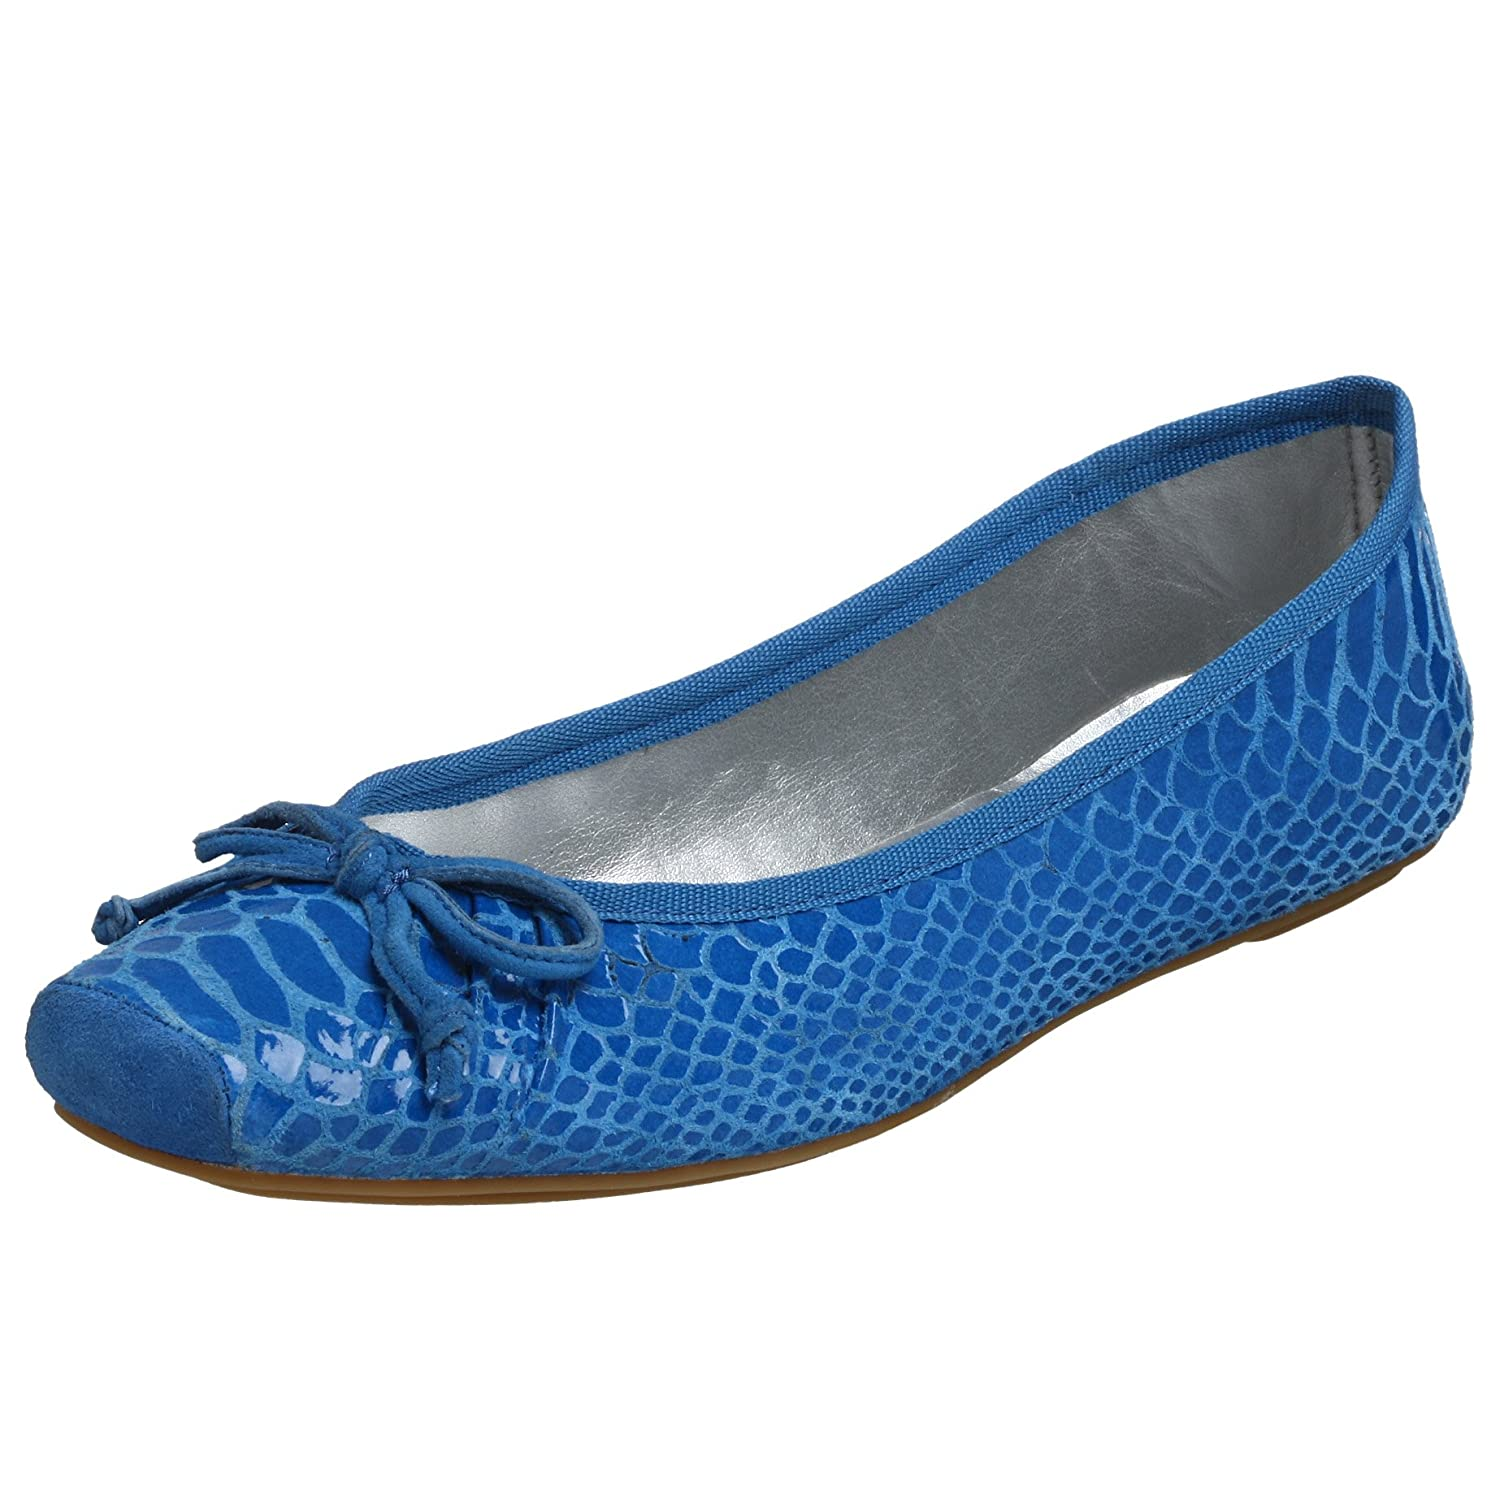 Endless.com: Jessica Simpson Women's Leve Flat: Categories - Free Overnight Shipping & Return Shipping :  blue jessica simpson shoes flats